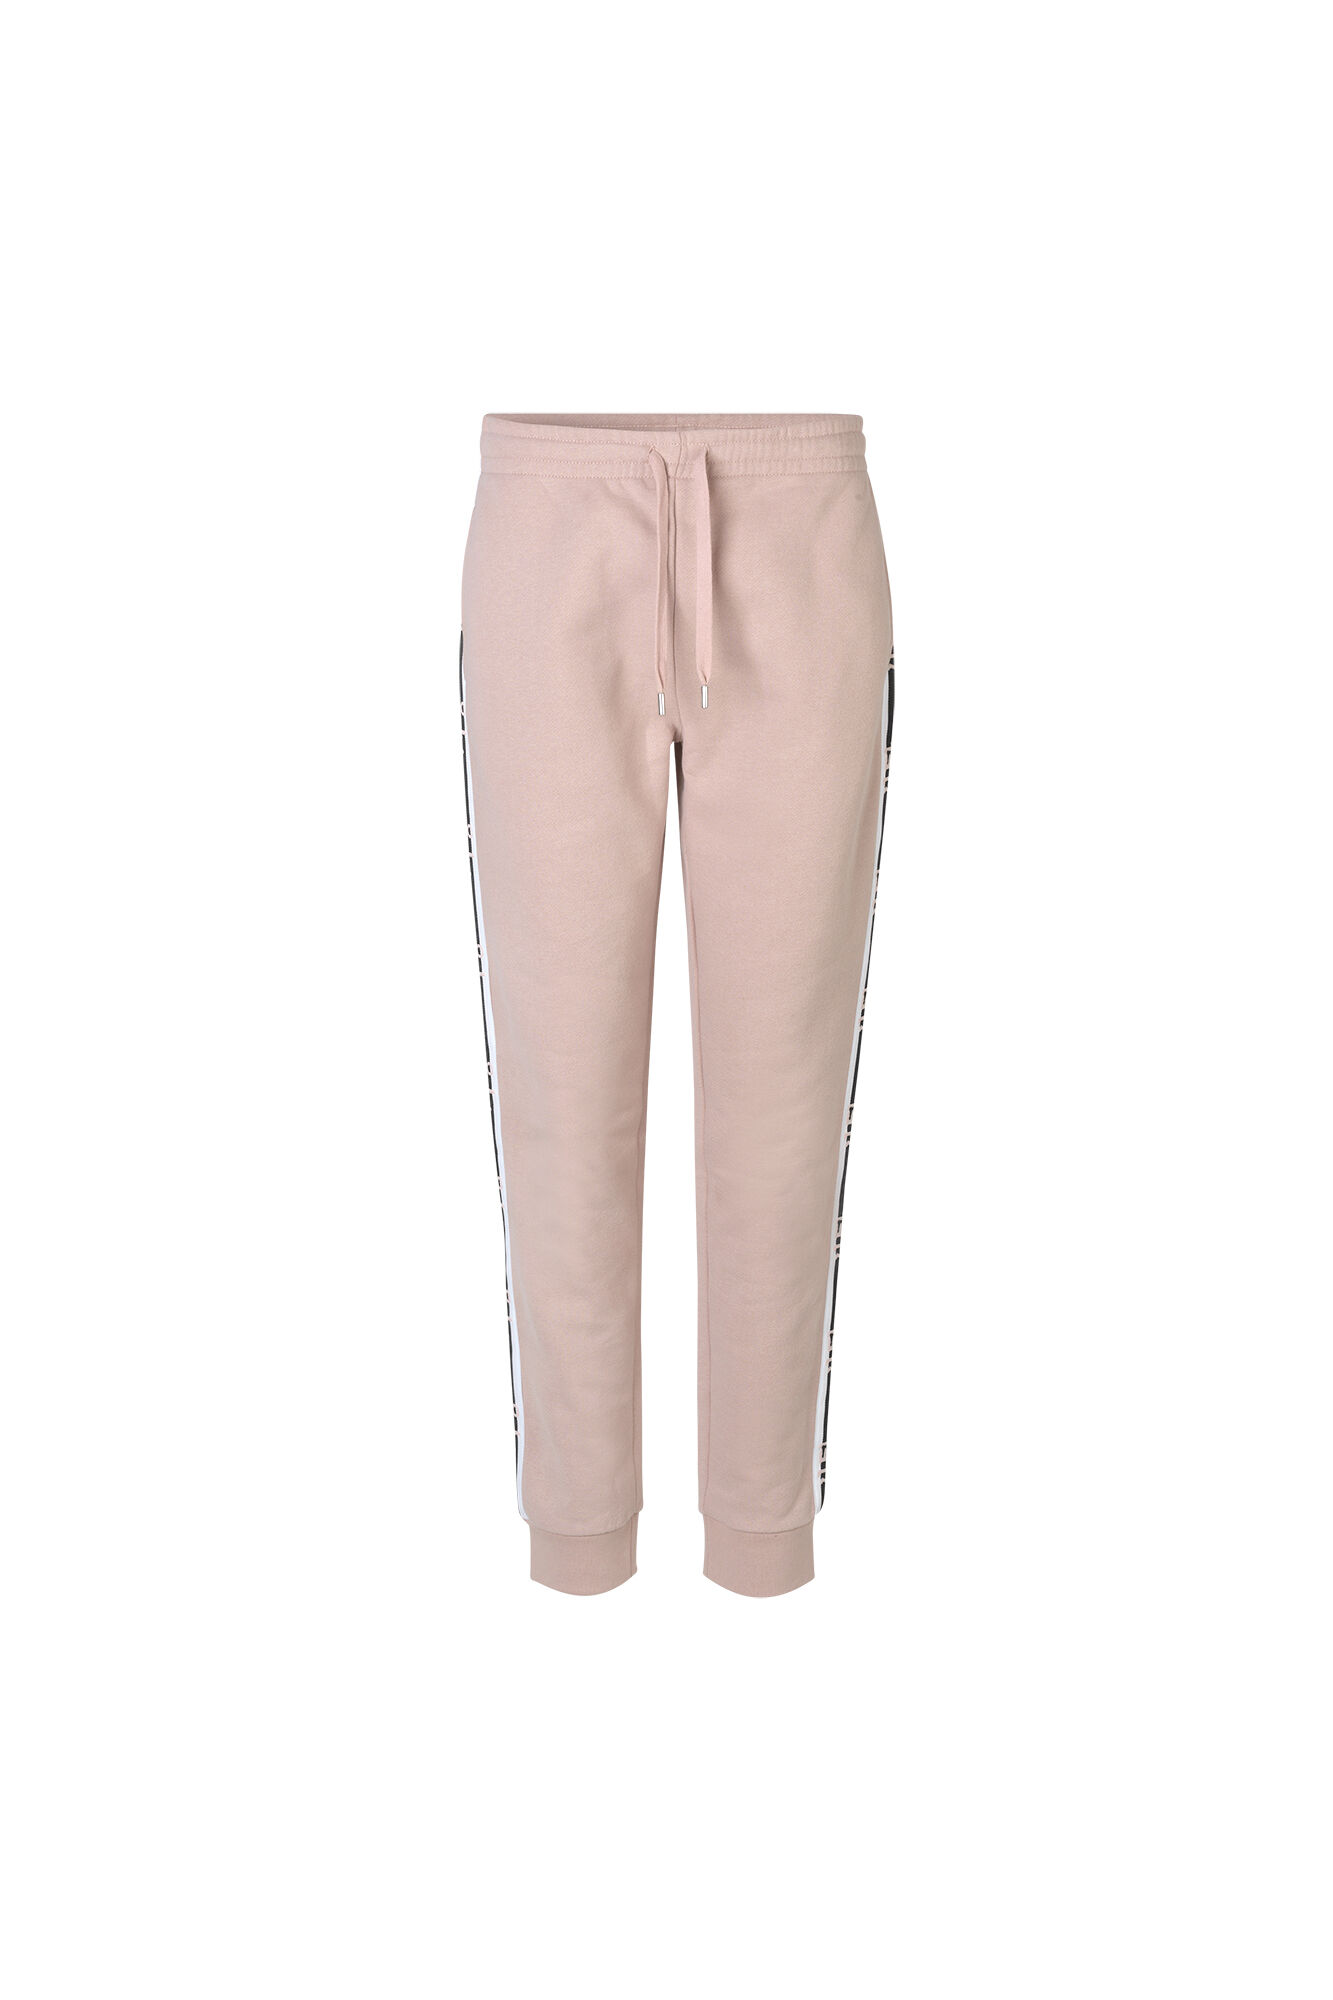 ENCHEWY PANTS 5899, BEIGE BLUSH